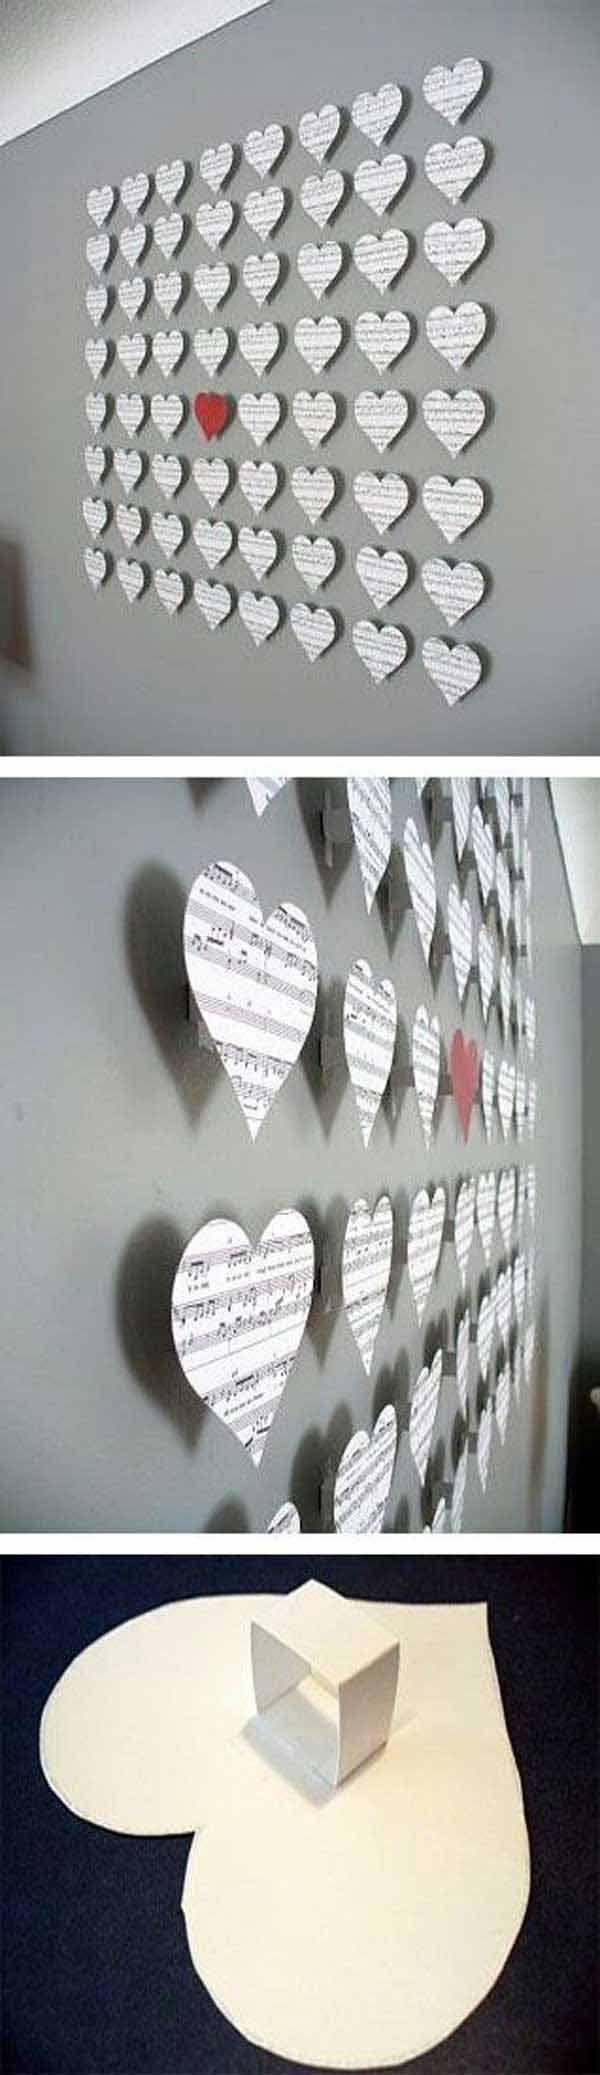 Bedroom wall decoration diy - 26 Diy Cool And No Money Decorating Ideas For Your Wall